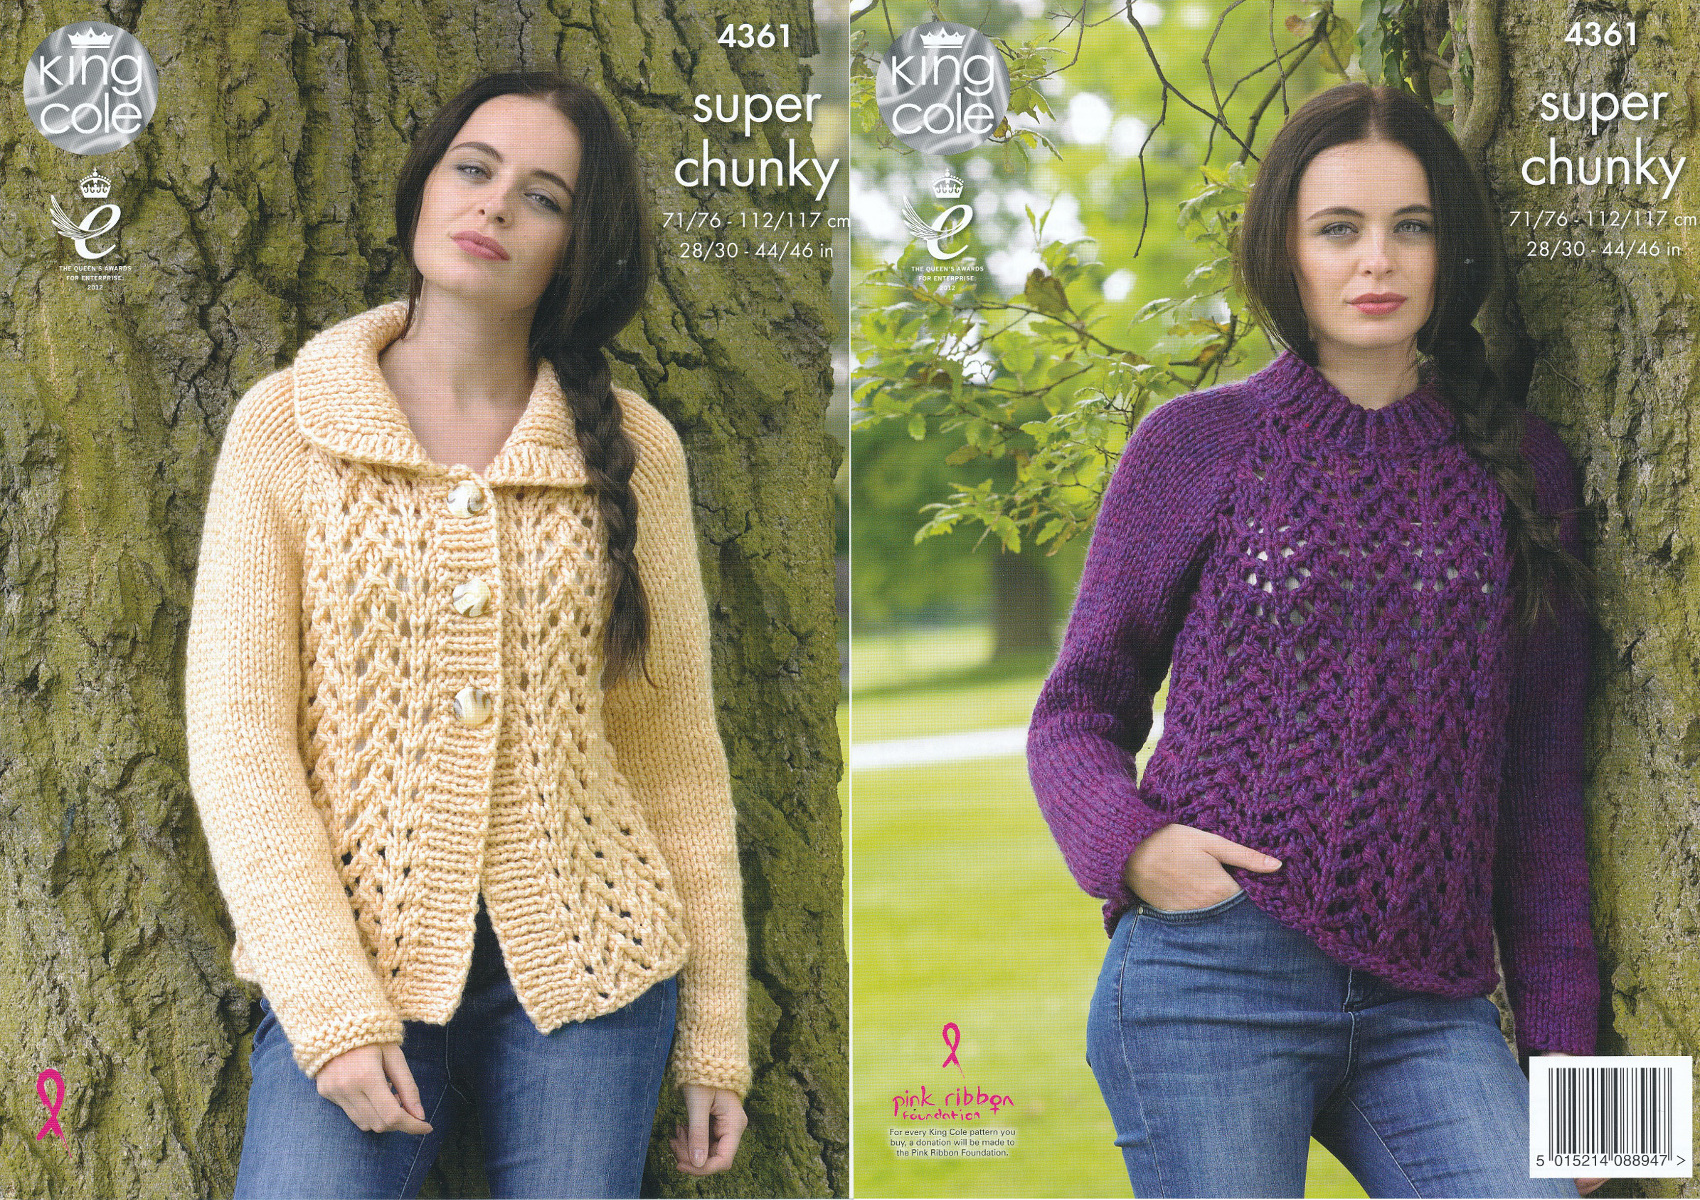 1ad49ad5d Ladies Super Chunky Knitting Pattern King Cole Lace Effect Cardigan ...